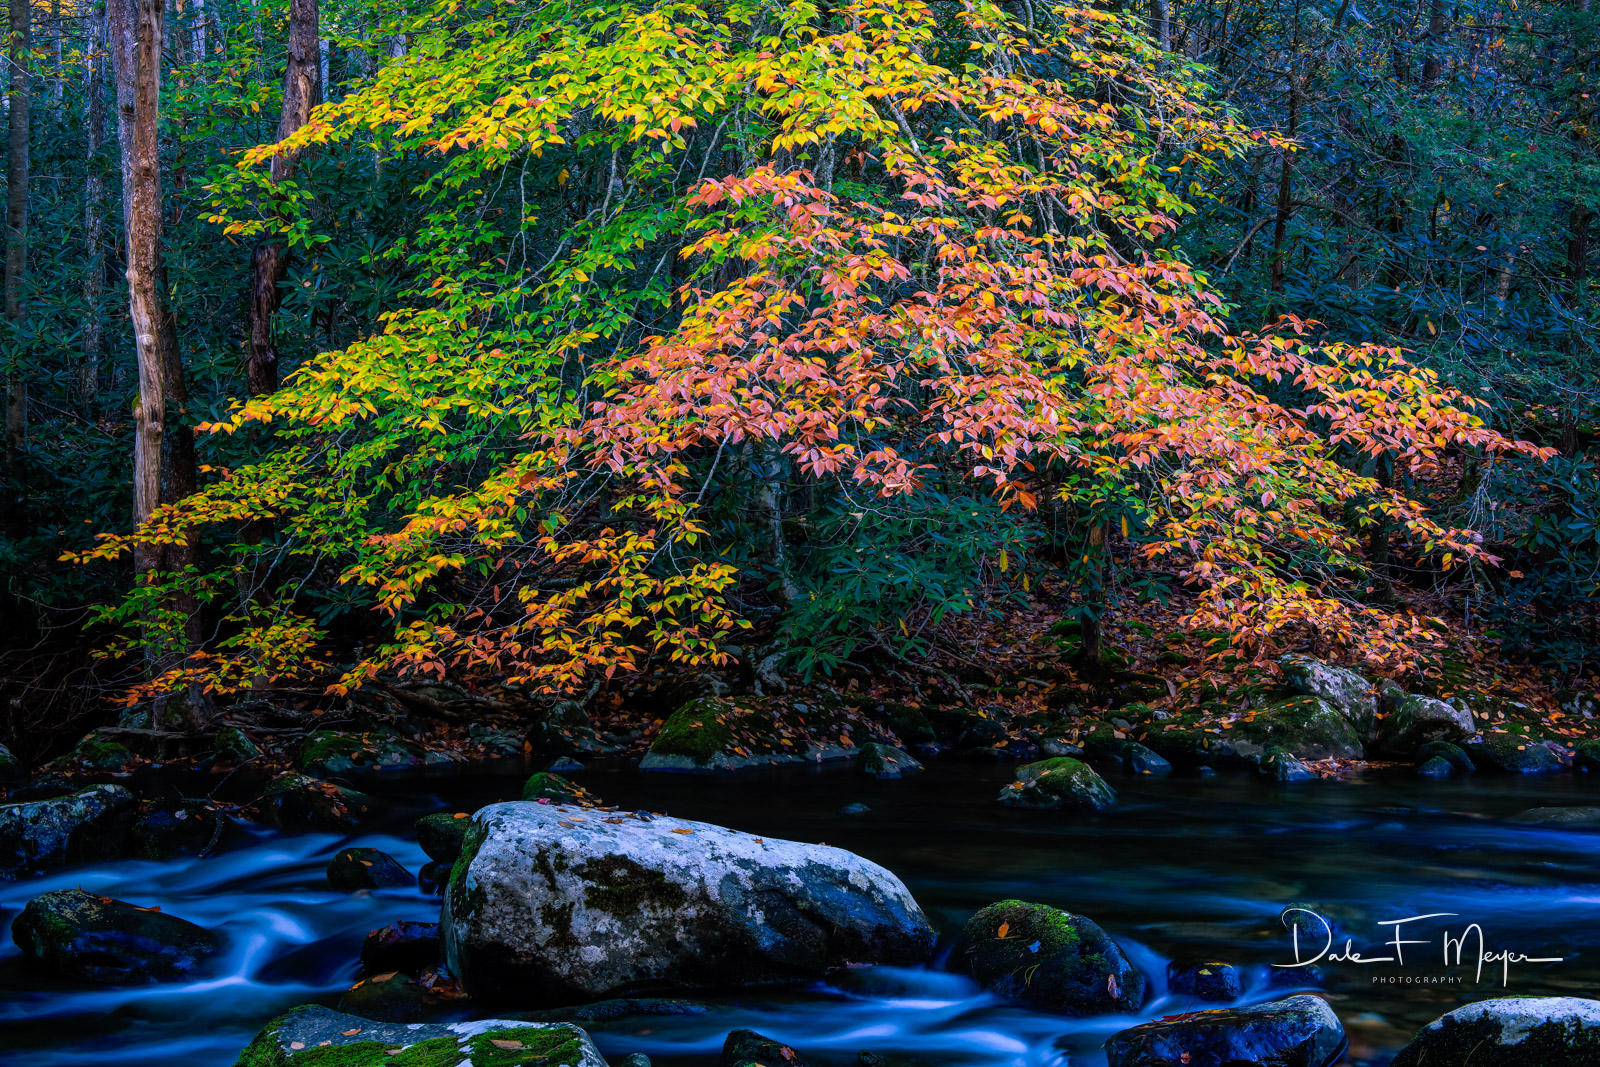 Fall 2015,Great Smokey Mountains,Middle Prong Little River,River elm tree,Tremount,woodlands and trees gallerie, photo